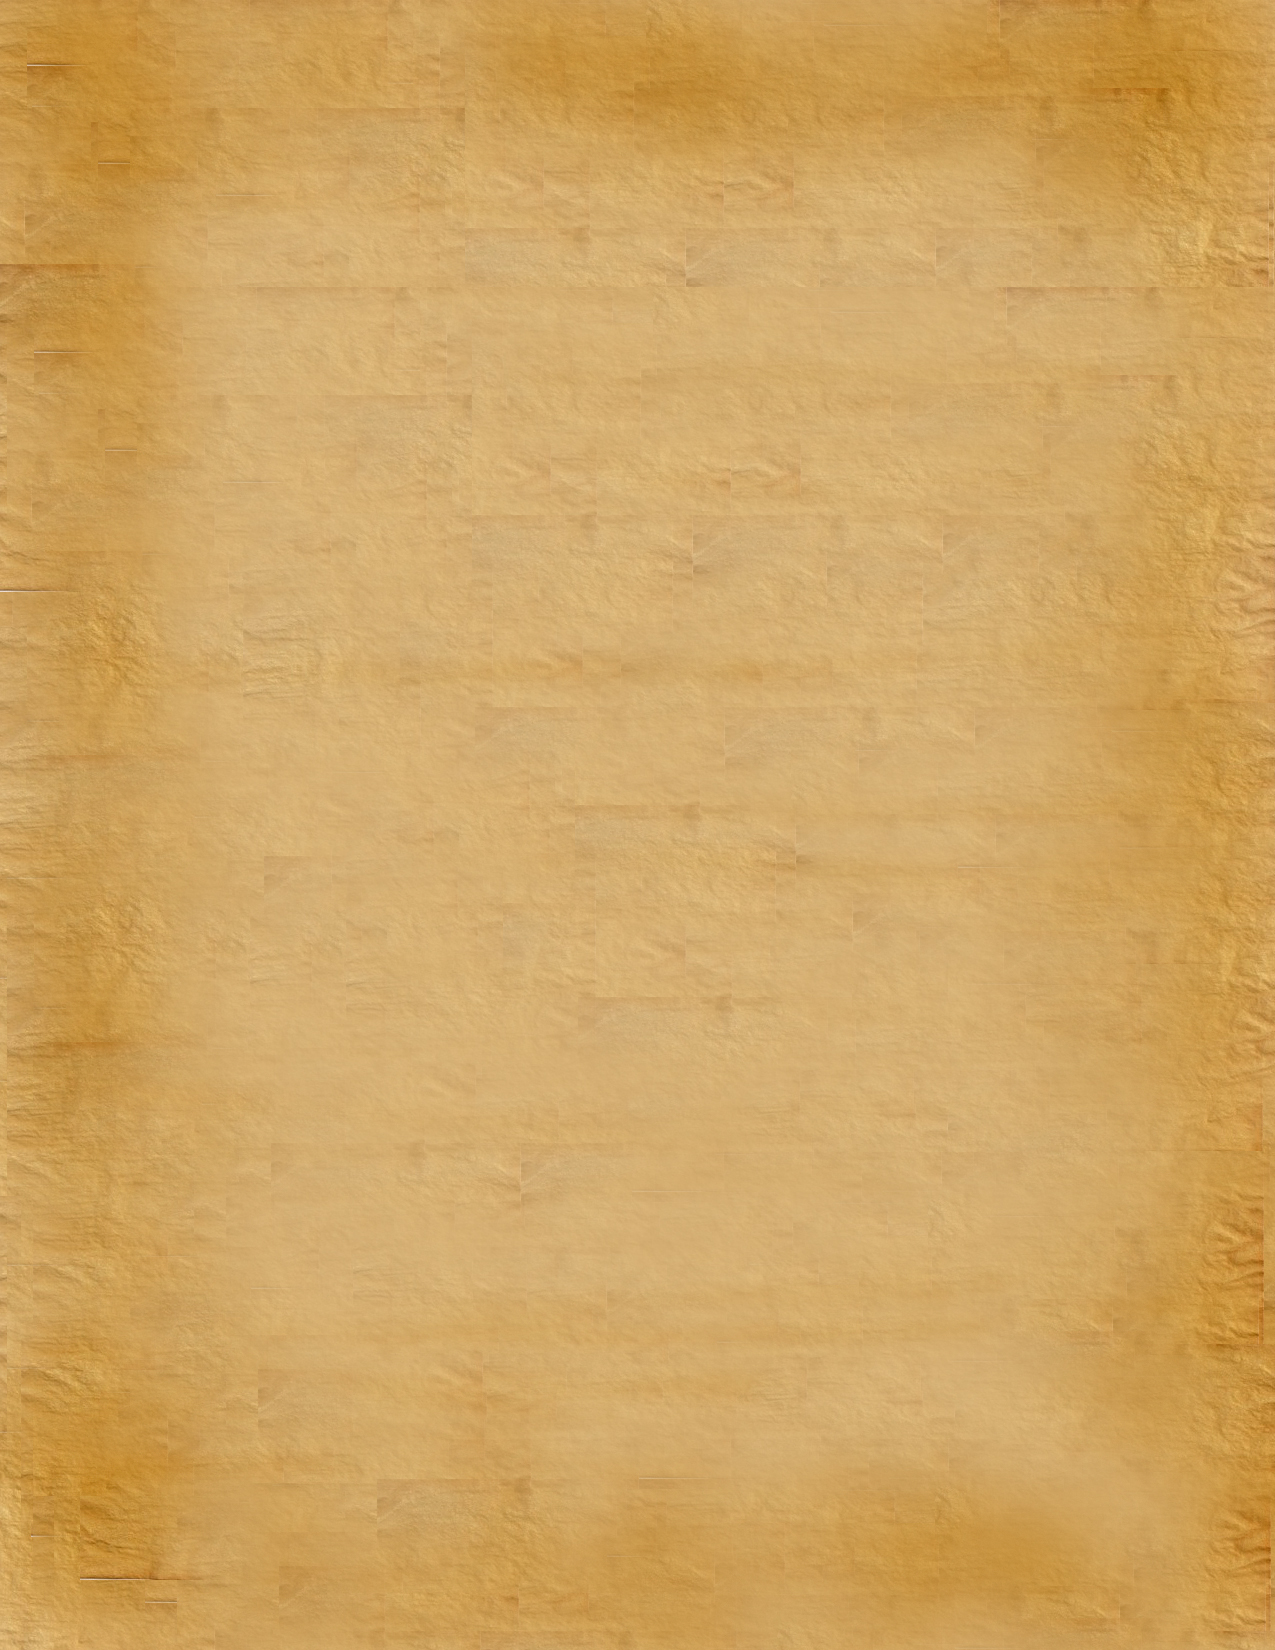 parchment paper texture by sinnedaria on deviantart